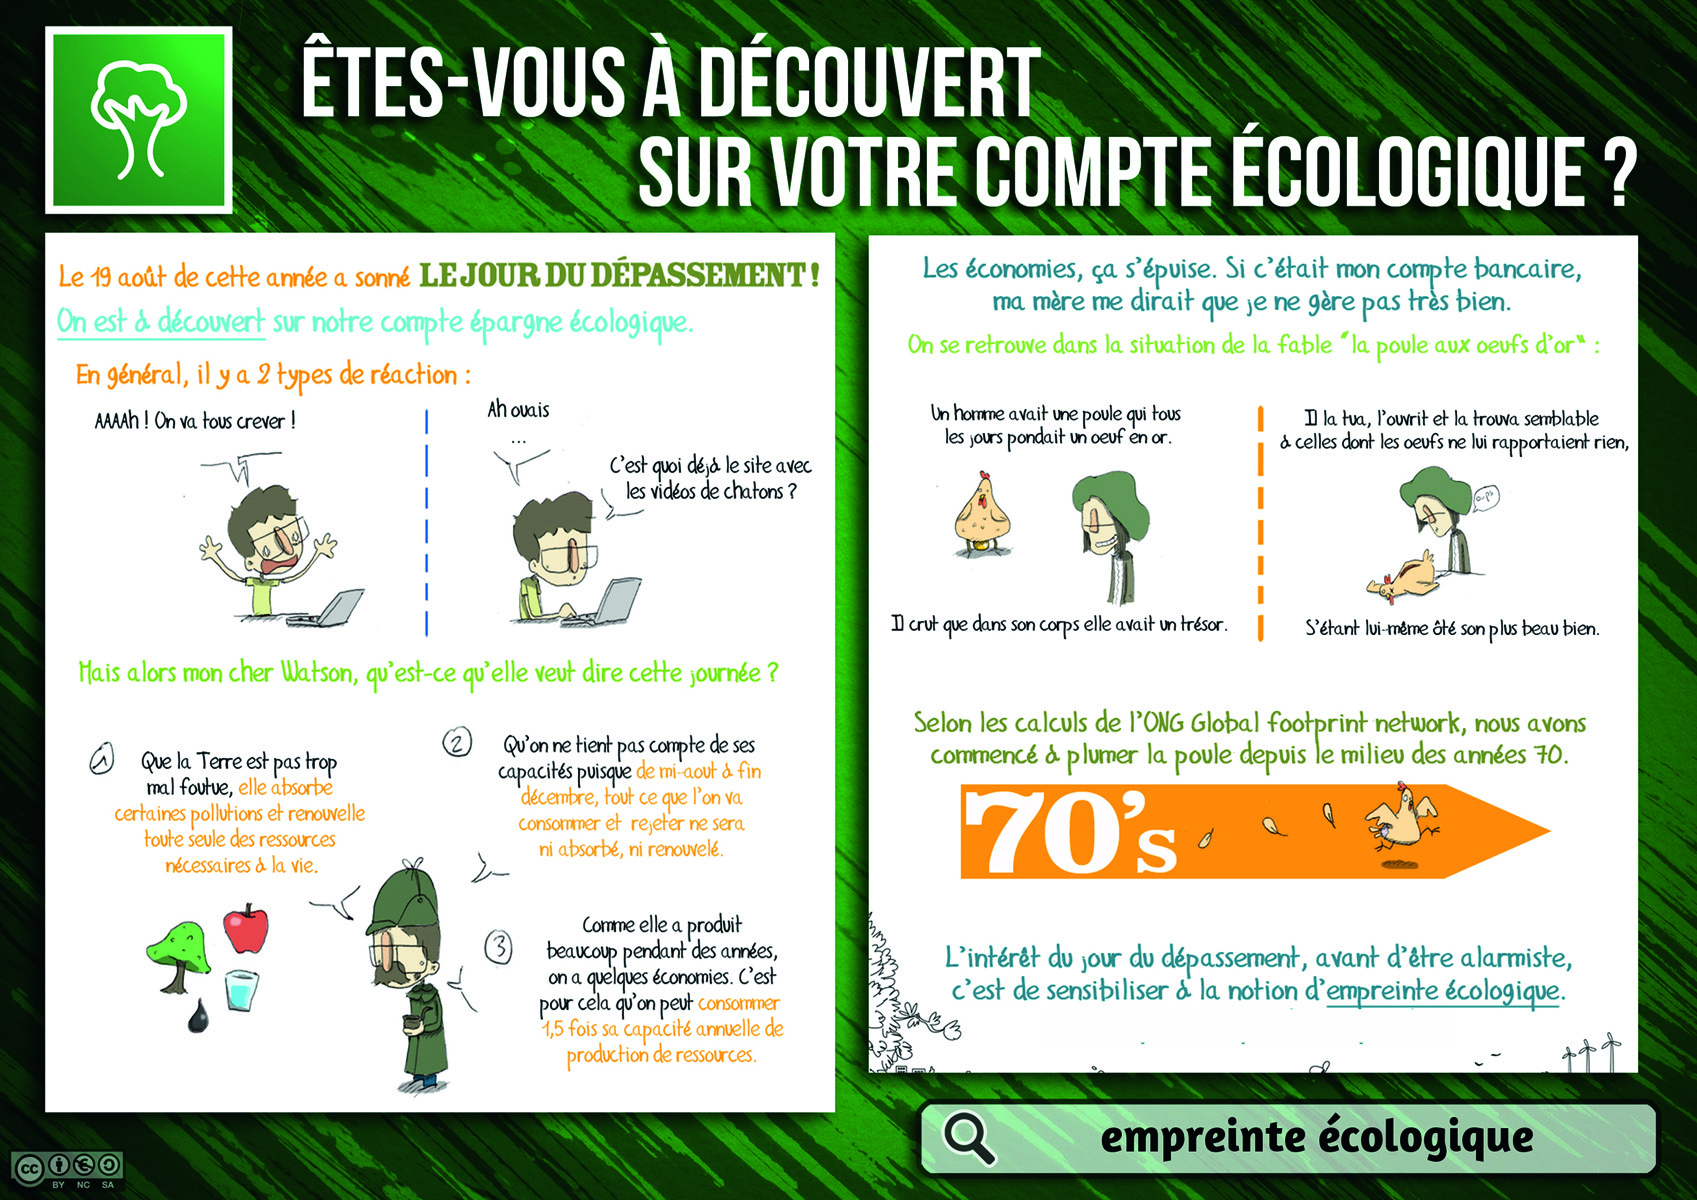 http://www.informaction.info/sites/default/files/images/en10_-_empreinte_ecologique.jpg